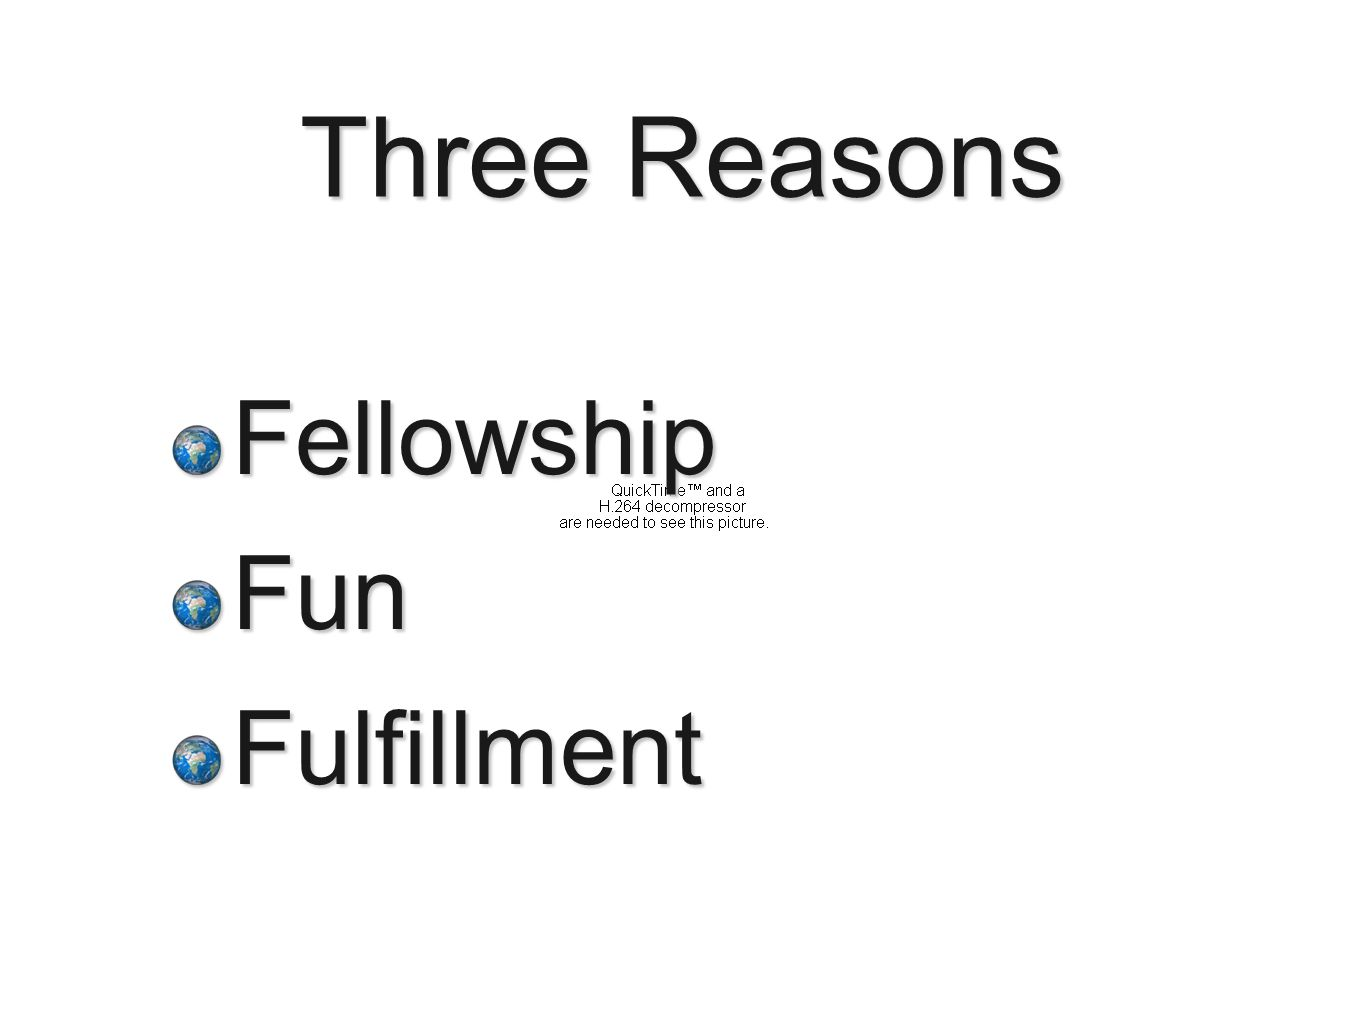 Three Reasons Fellowship Fun Fulfillment